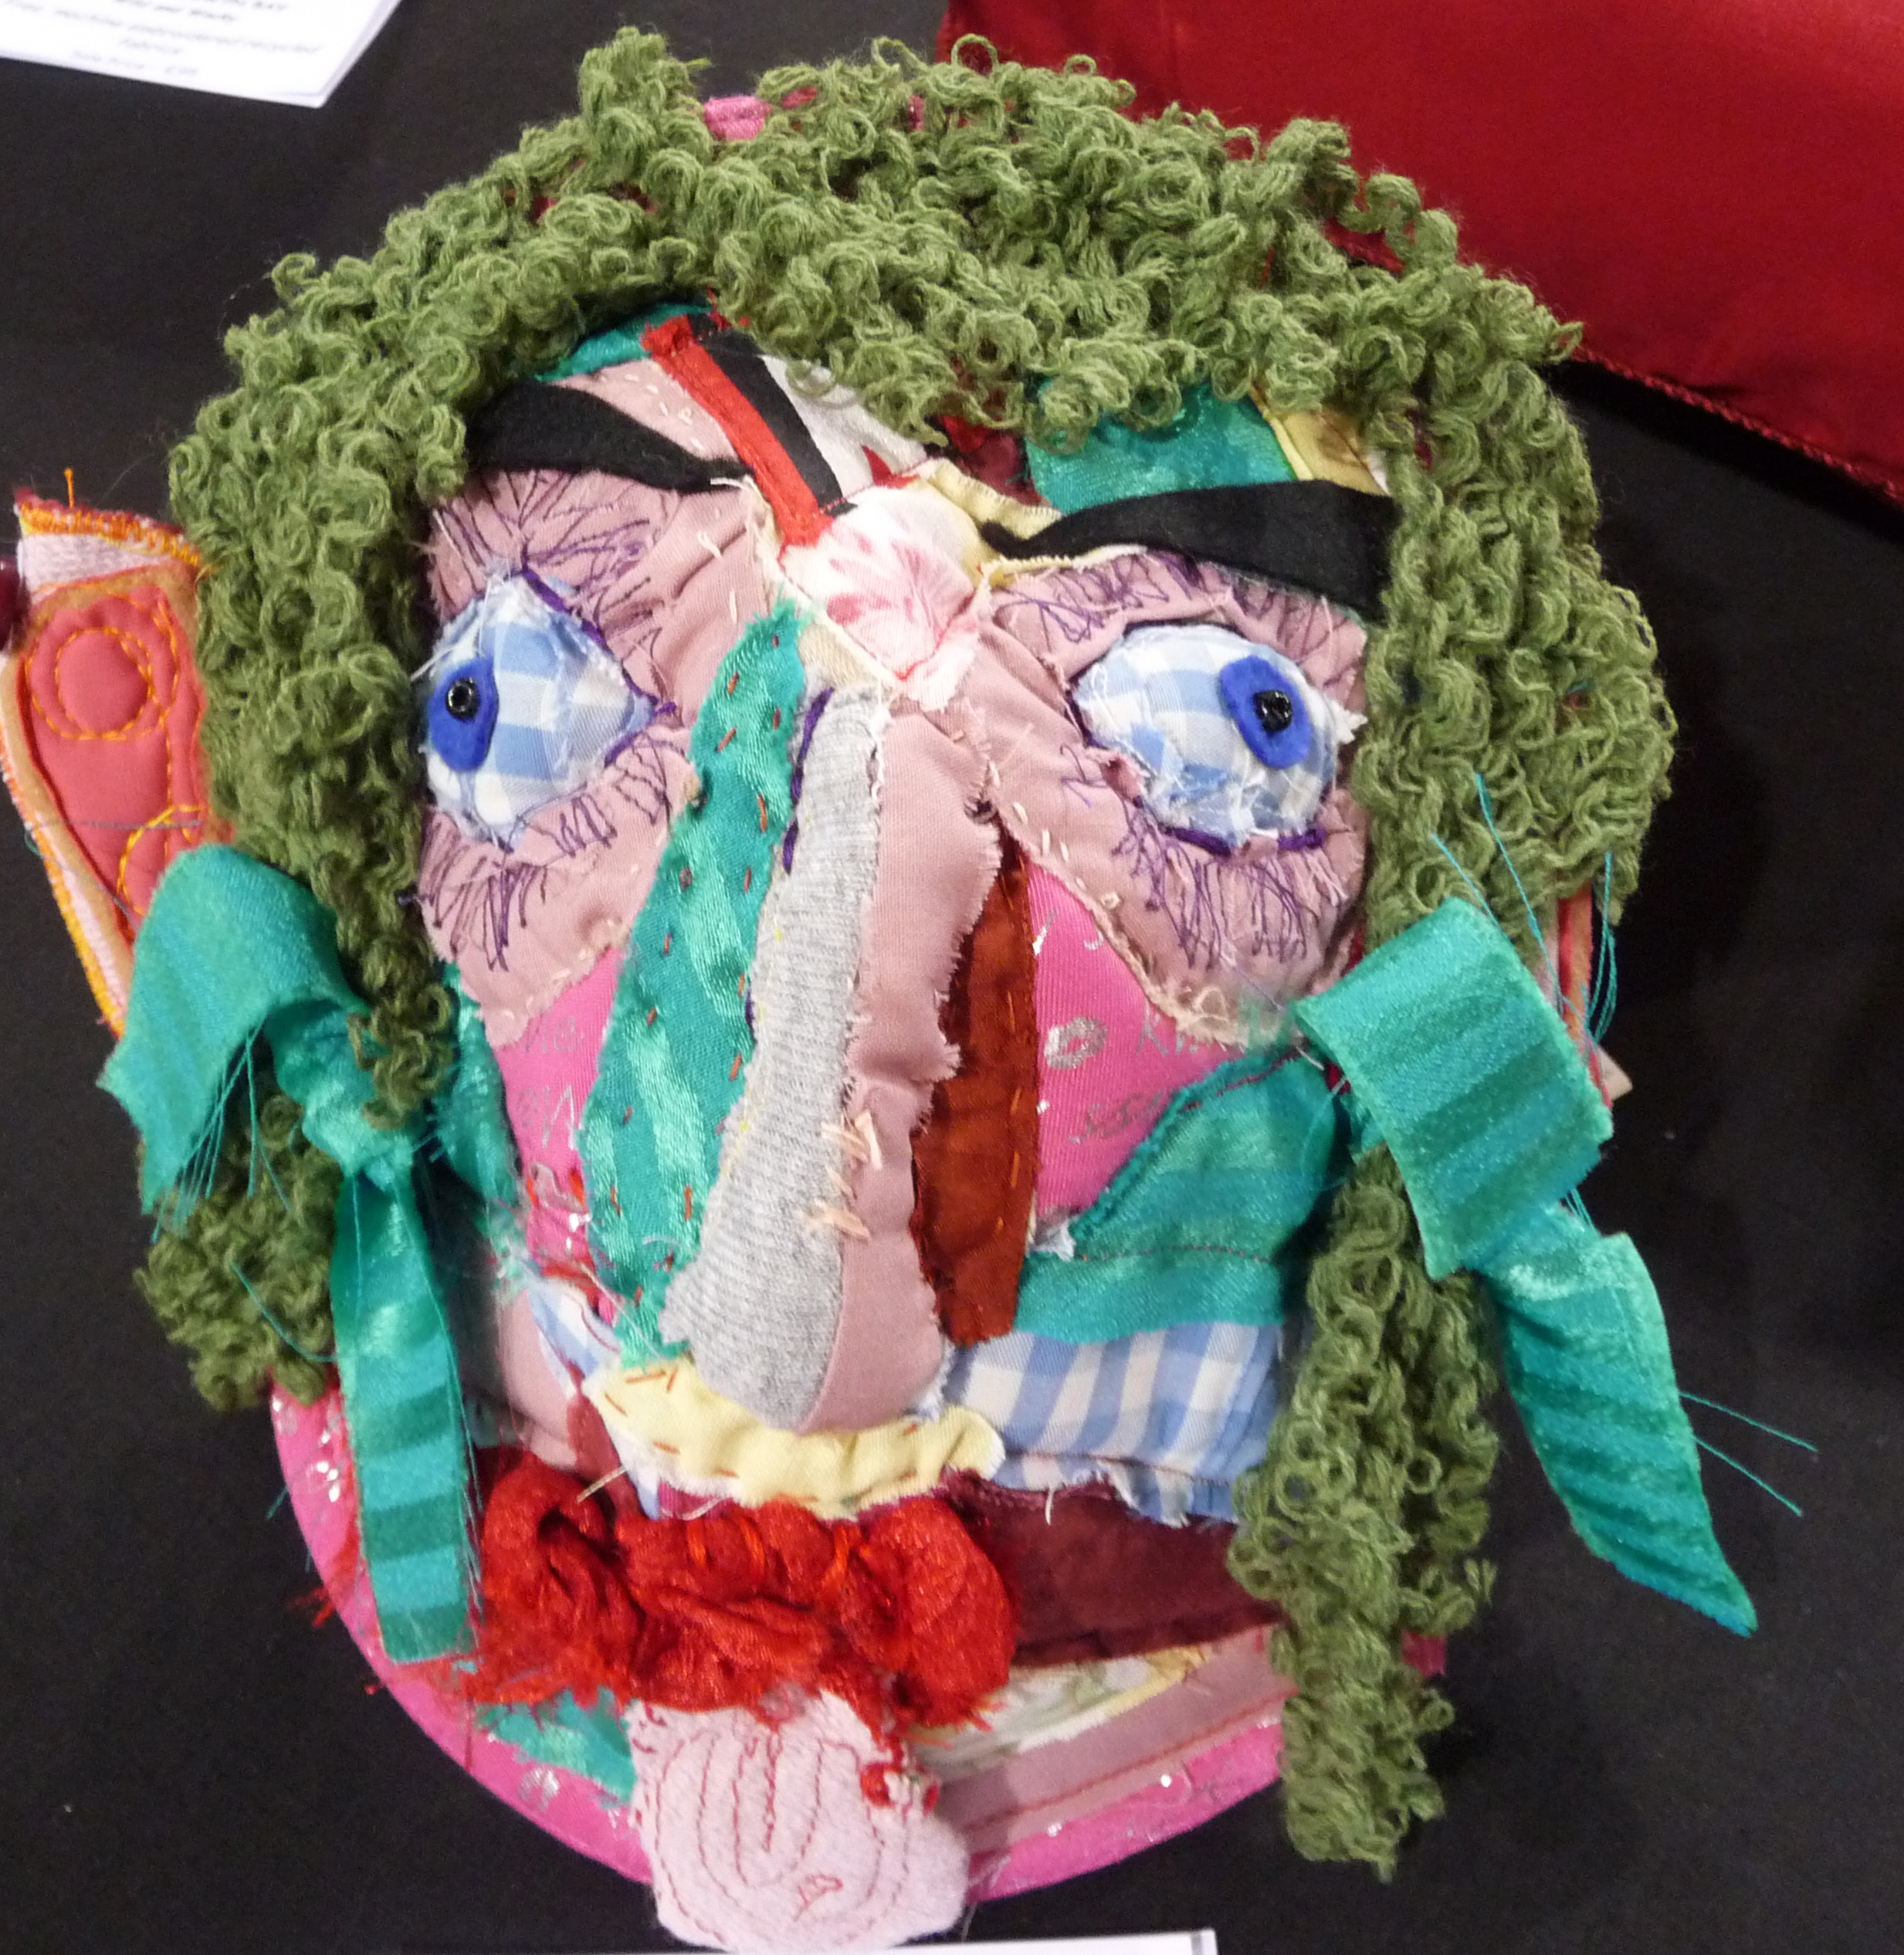 LADY BARBARA, Wild & Wacky, by Stuart Carr, fabric collage, recycled bra, shirt, blouse and cardigan